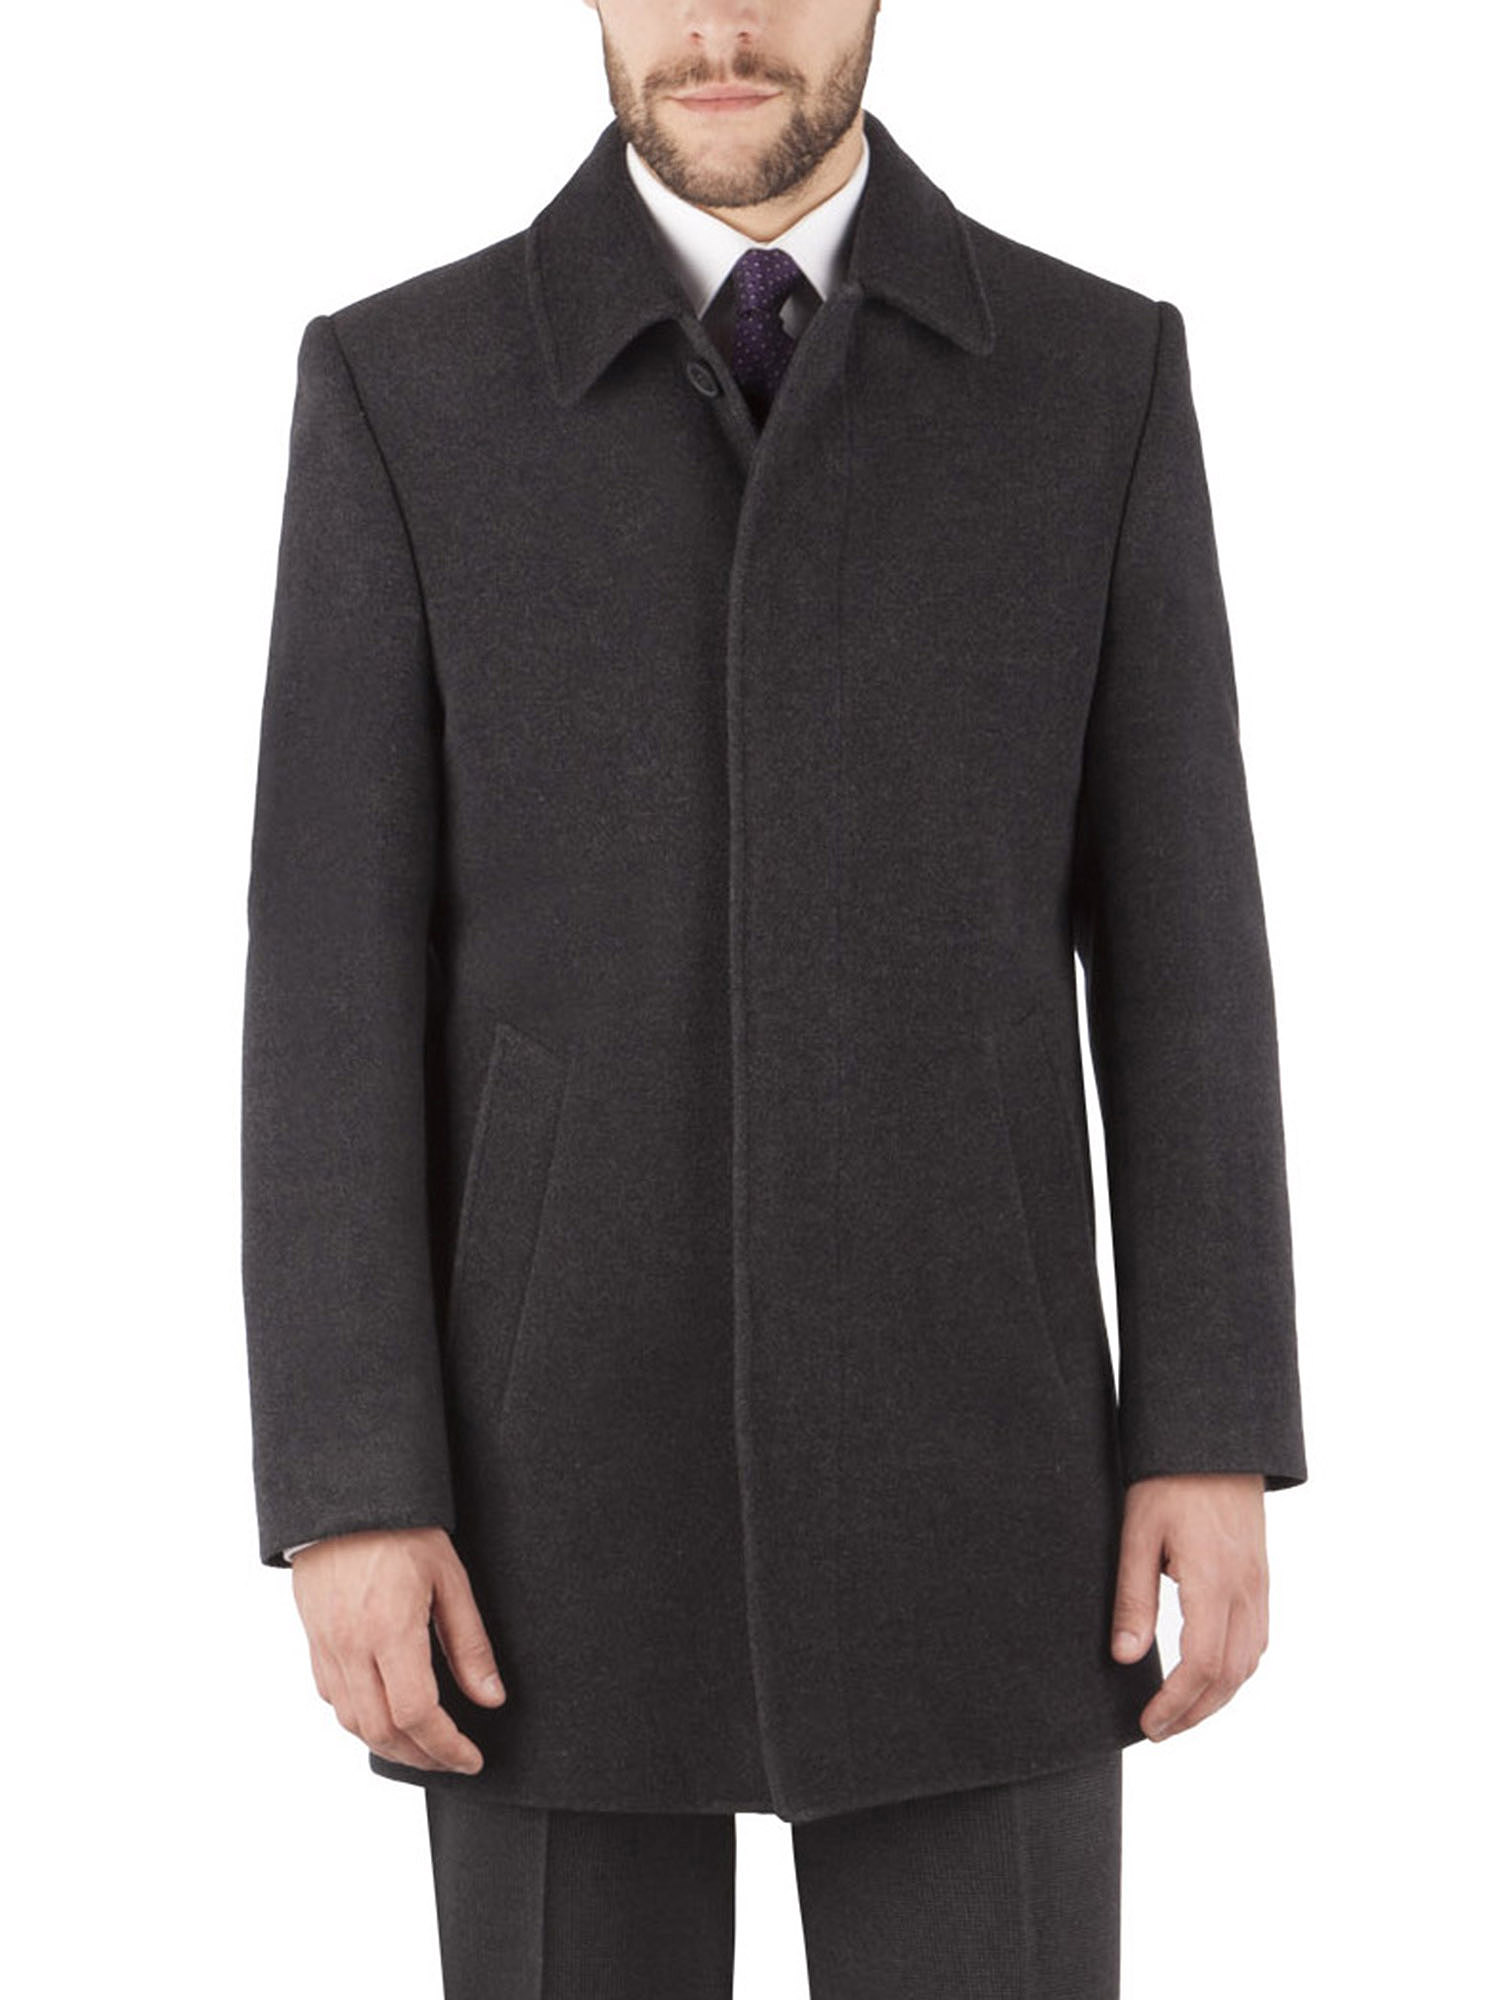 Plain Charcoal Grey Car Coat - Overcoats - Alexandre London